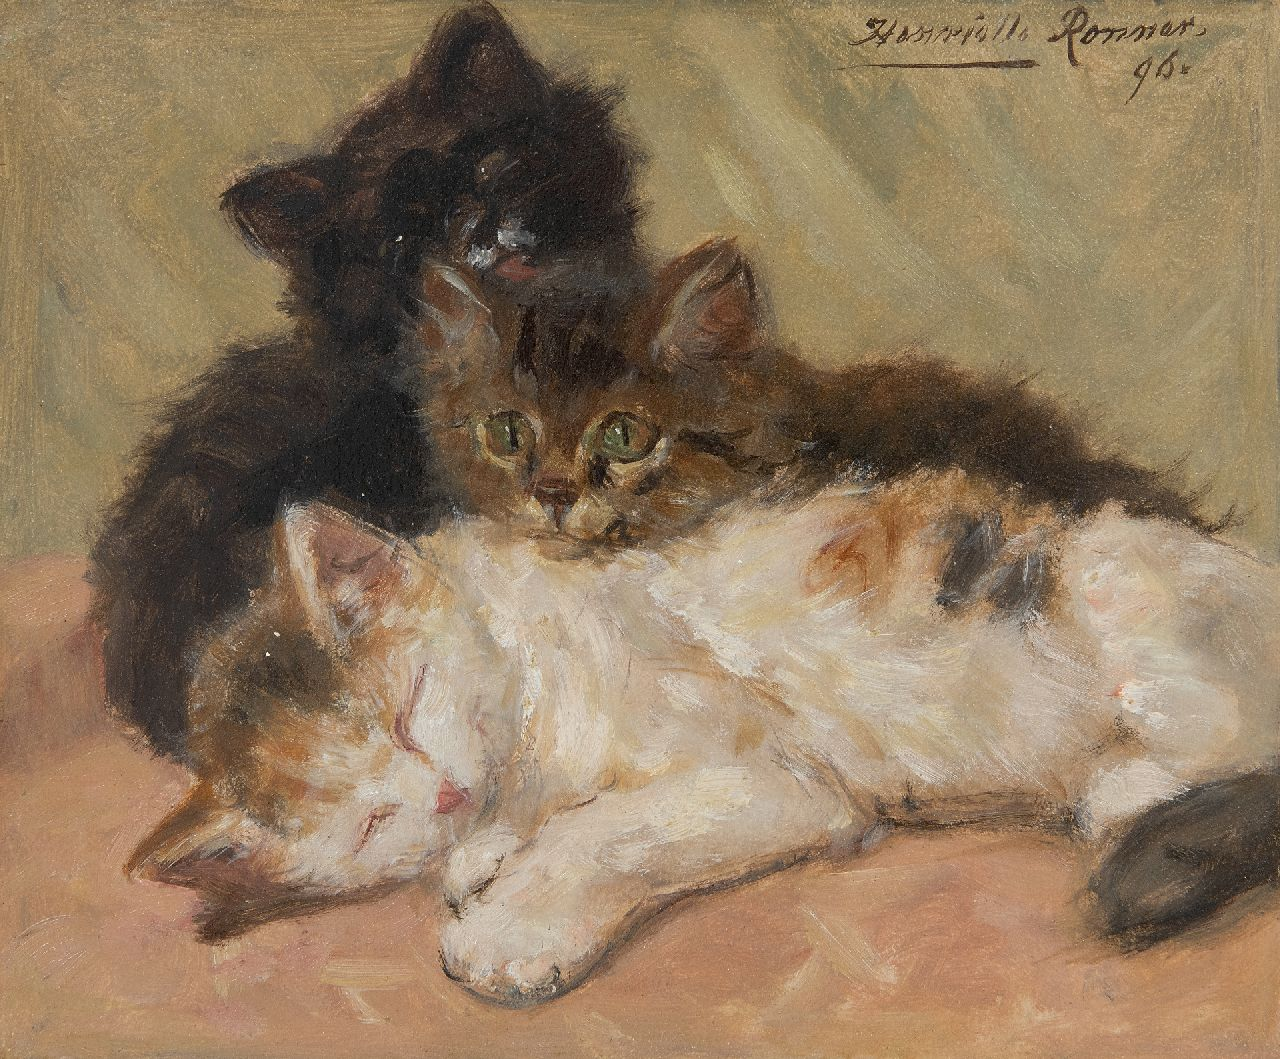 Ronner-Knip H.  | Henriette Ronner-Knip | Paintings offered for sale | Three kittens, oil on paper laid down on panel 19.0 x 22.5 cm, signed u.r. and dated '96